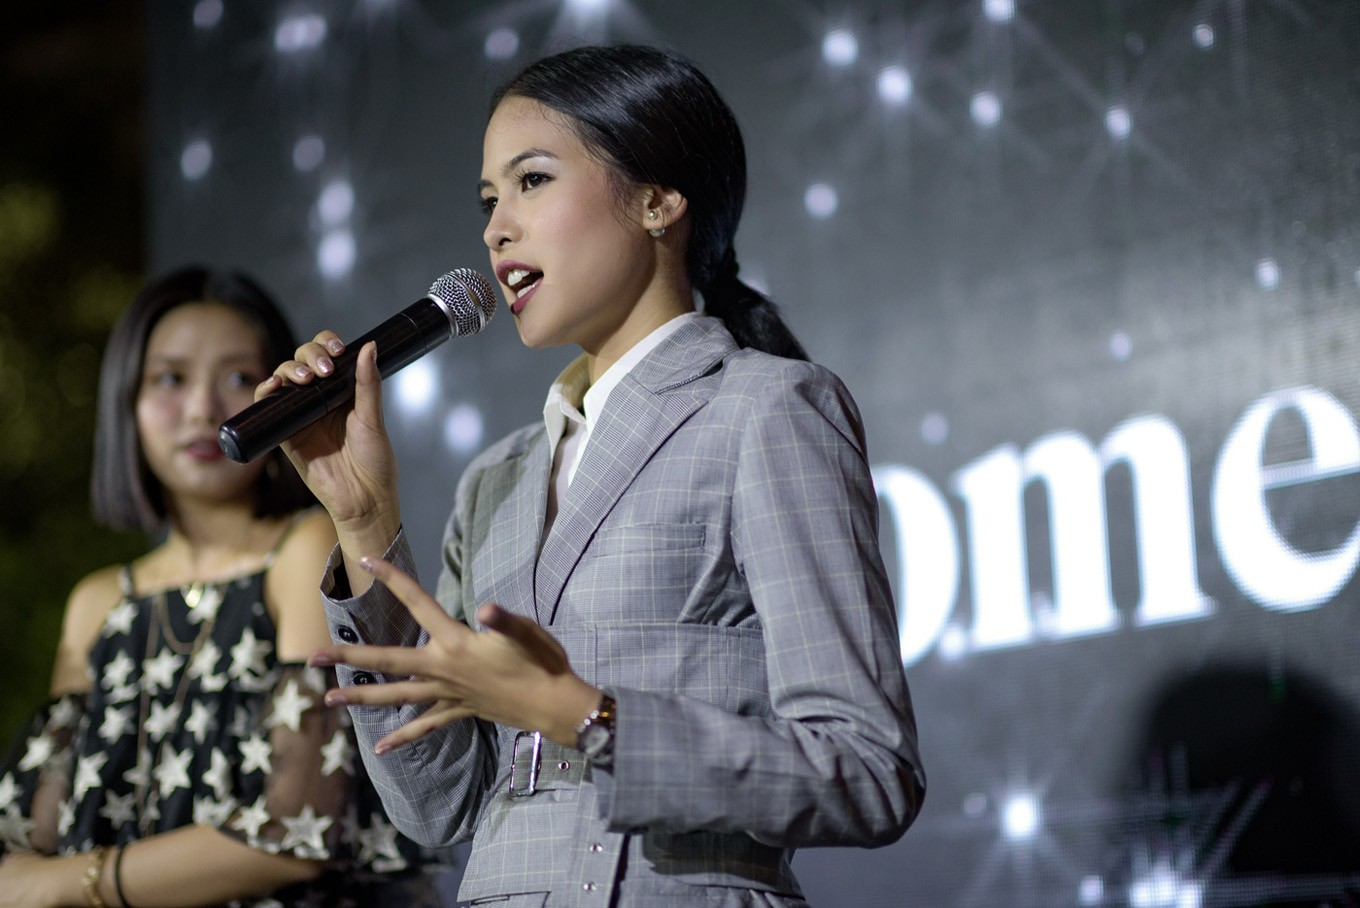 Maudy Ayunda on chasing dreams: 'Be authentic'